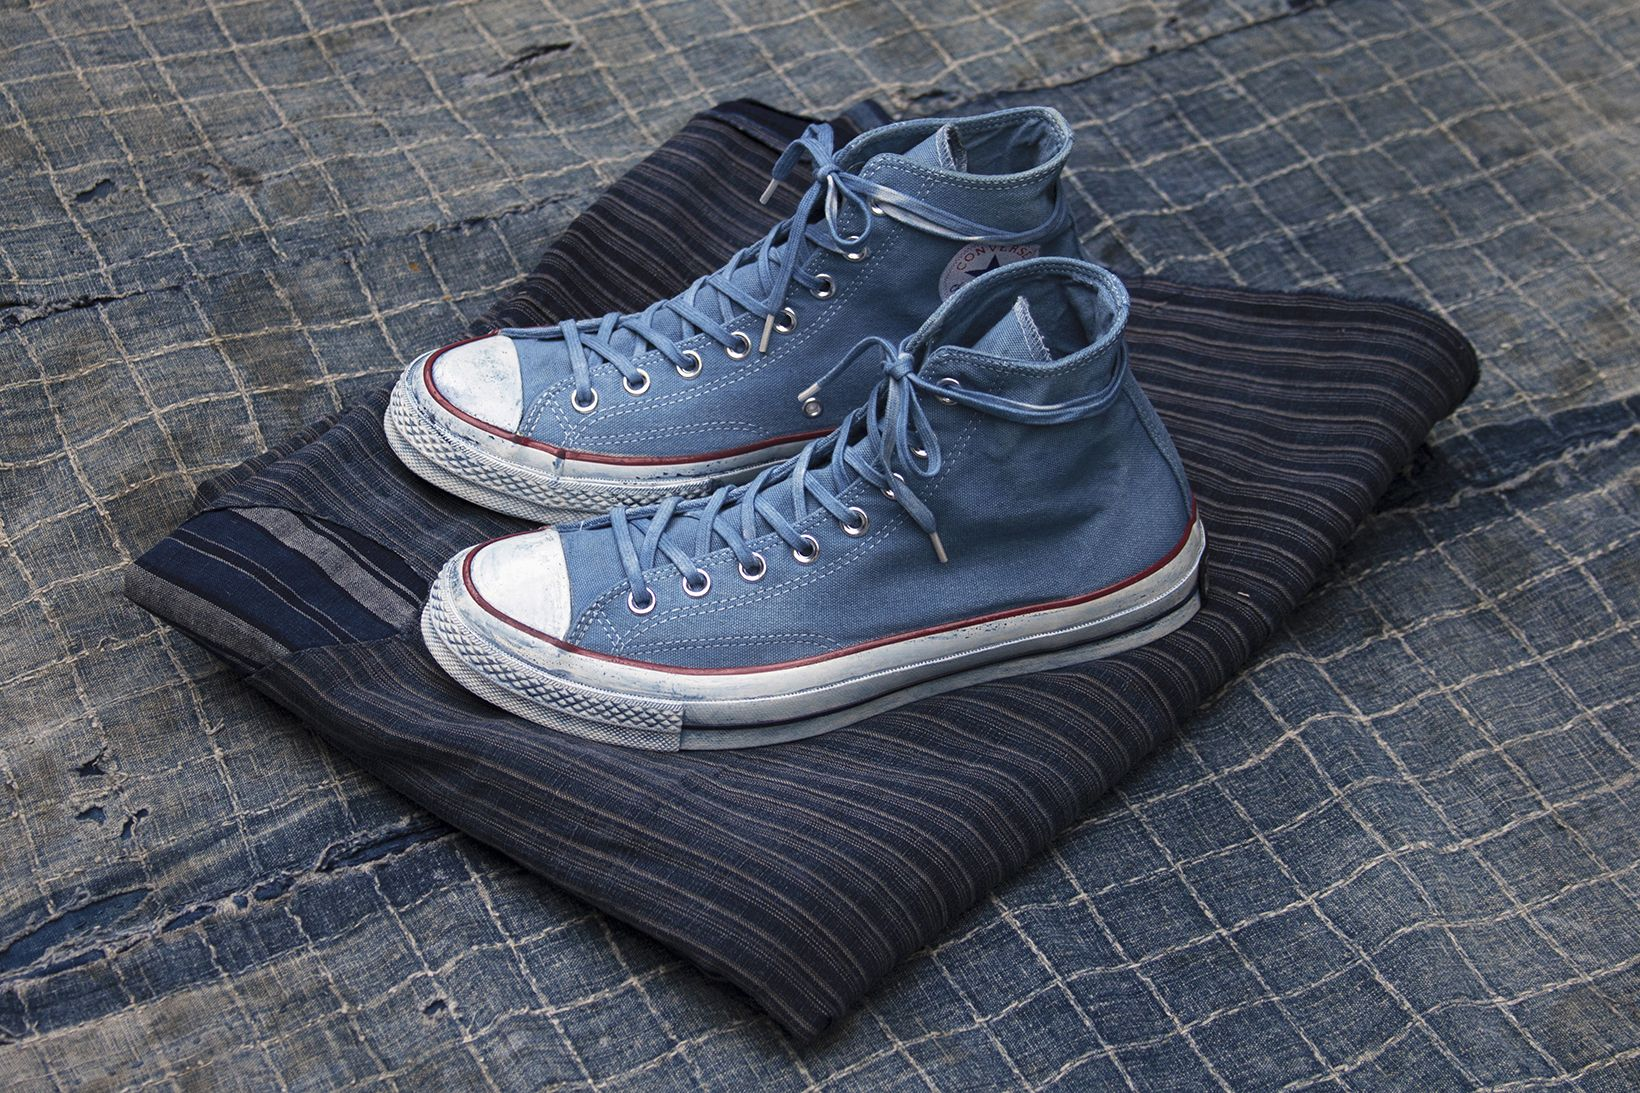 beb4c2b1d9ce Converse Goes Dutch With an Indigo-Hued Tenue De Nîmes Collaboration ...